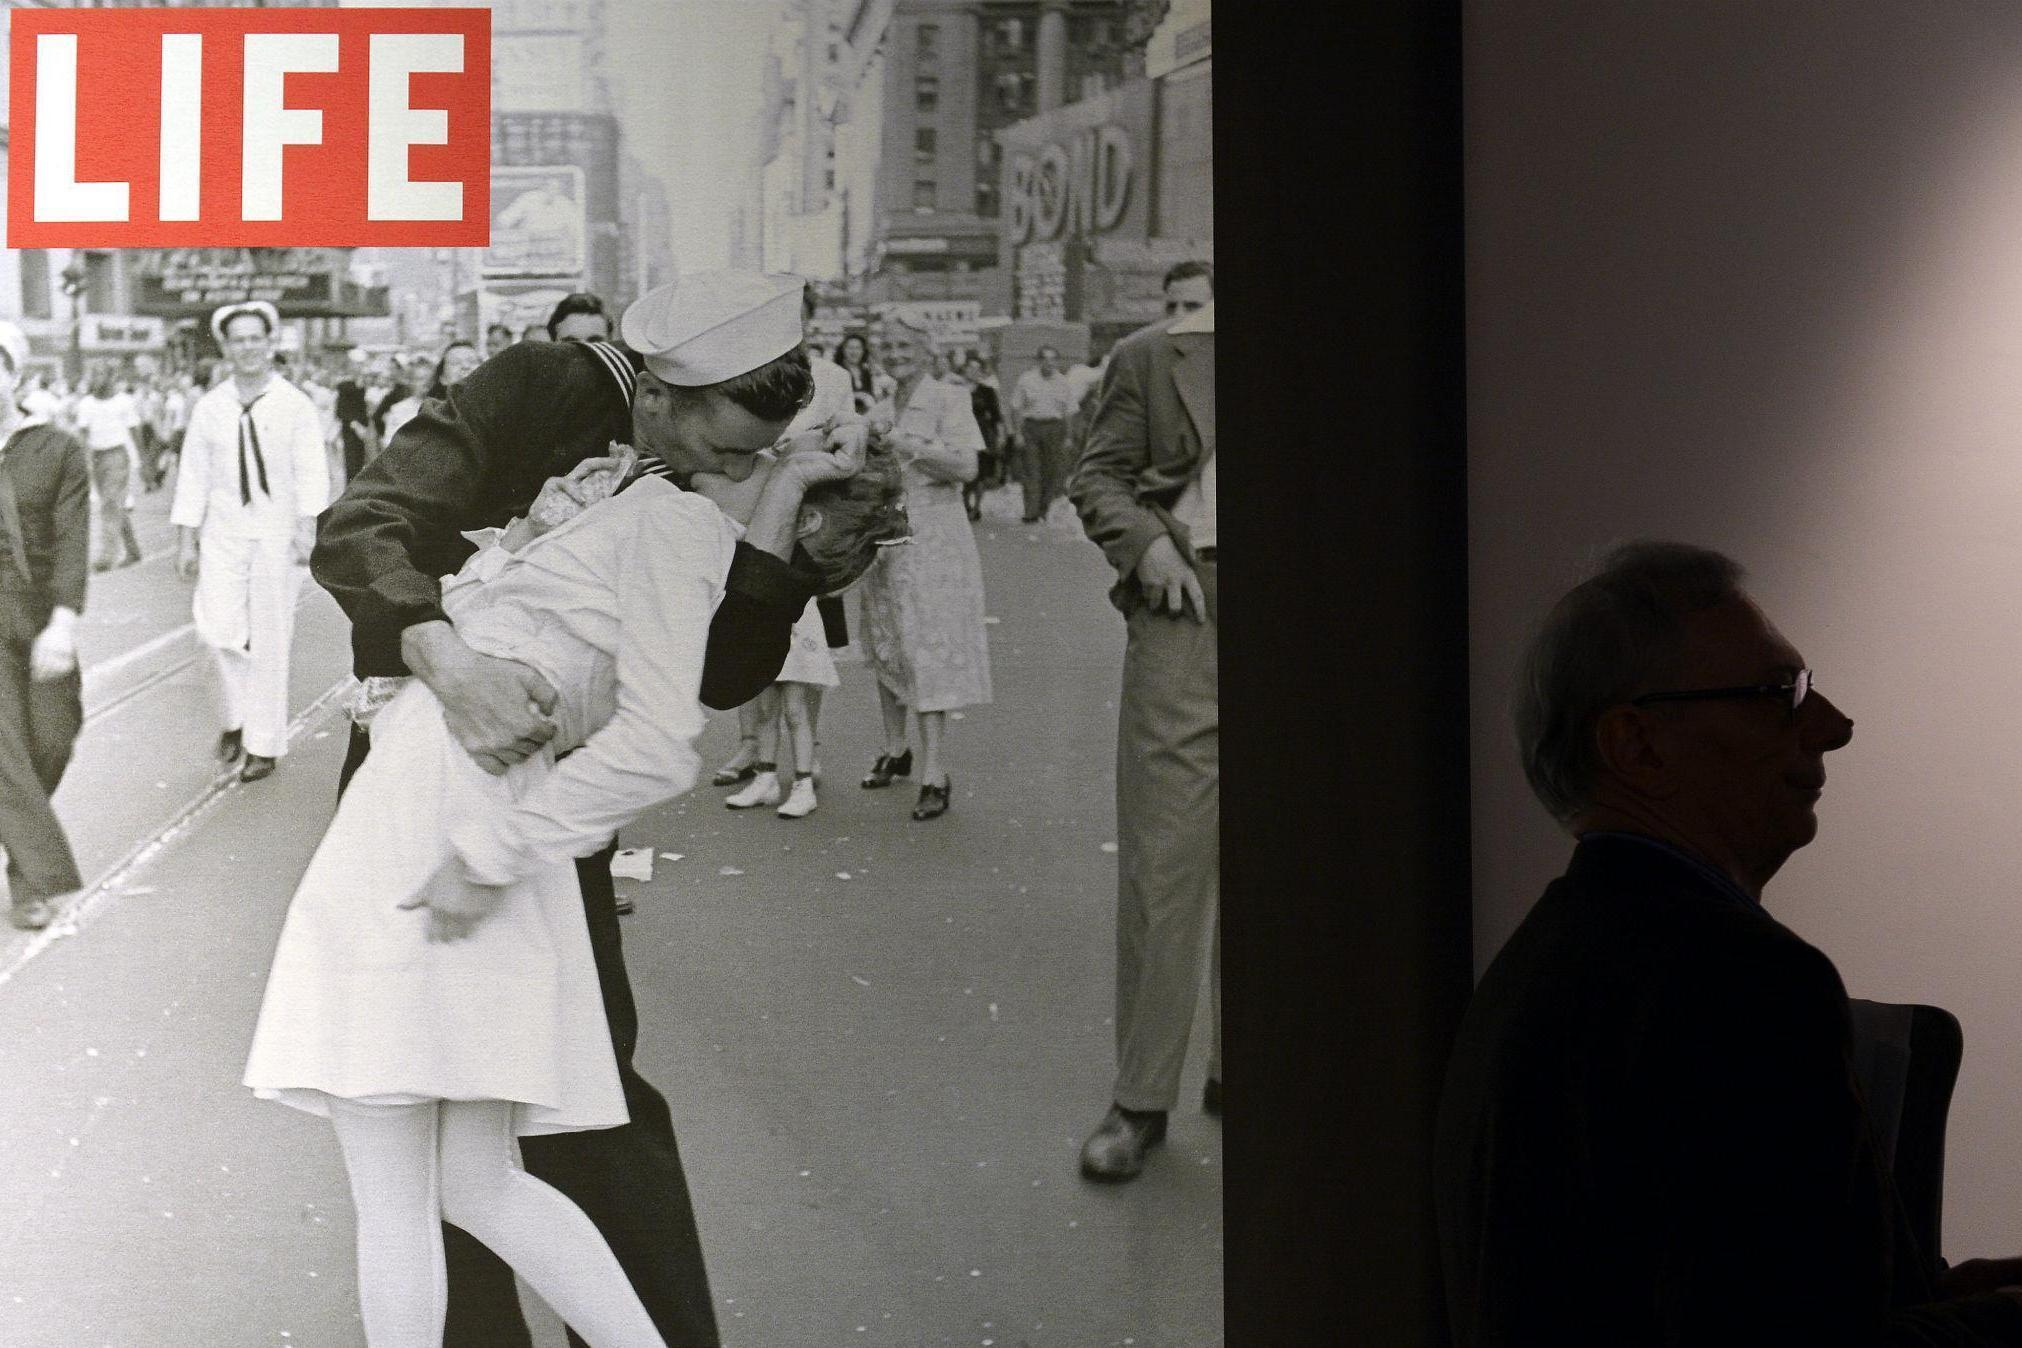 greta friedman thought to be nurse in iconic vj day photograph